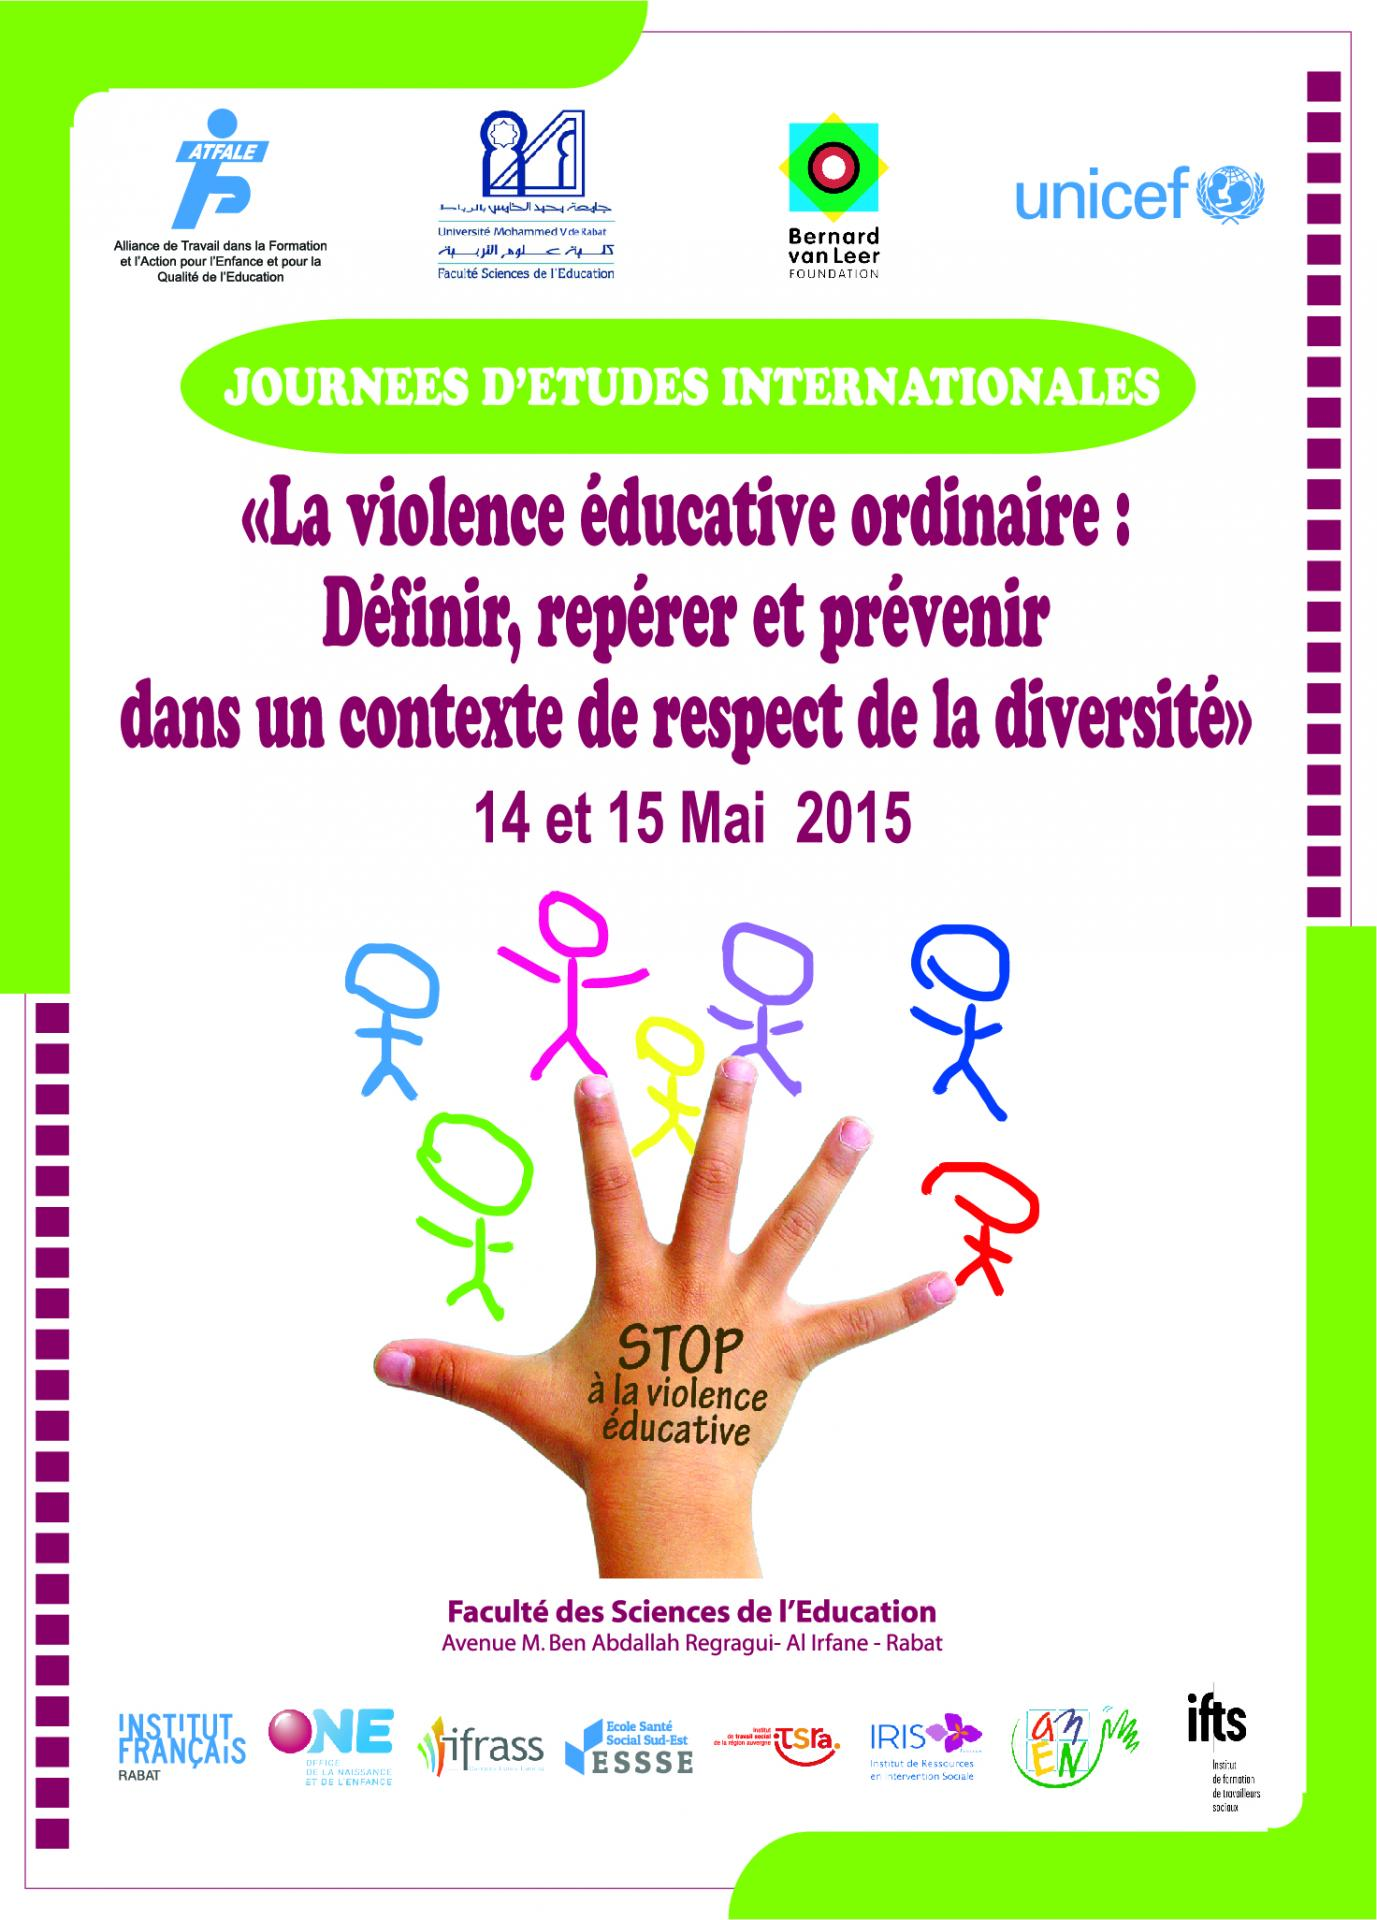 Violences educatives affiche